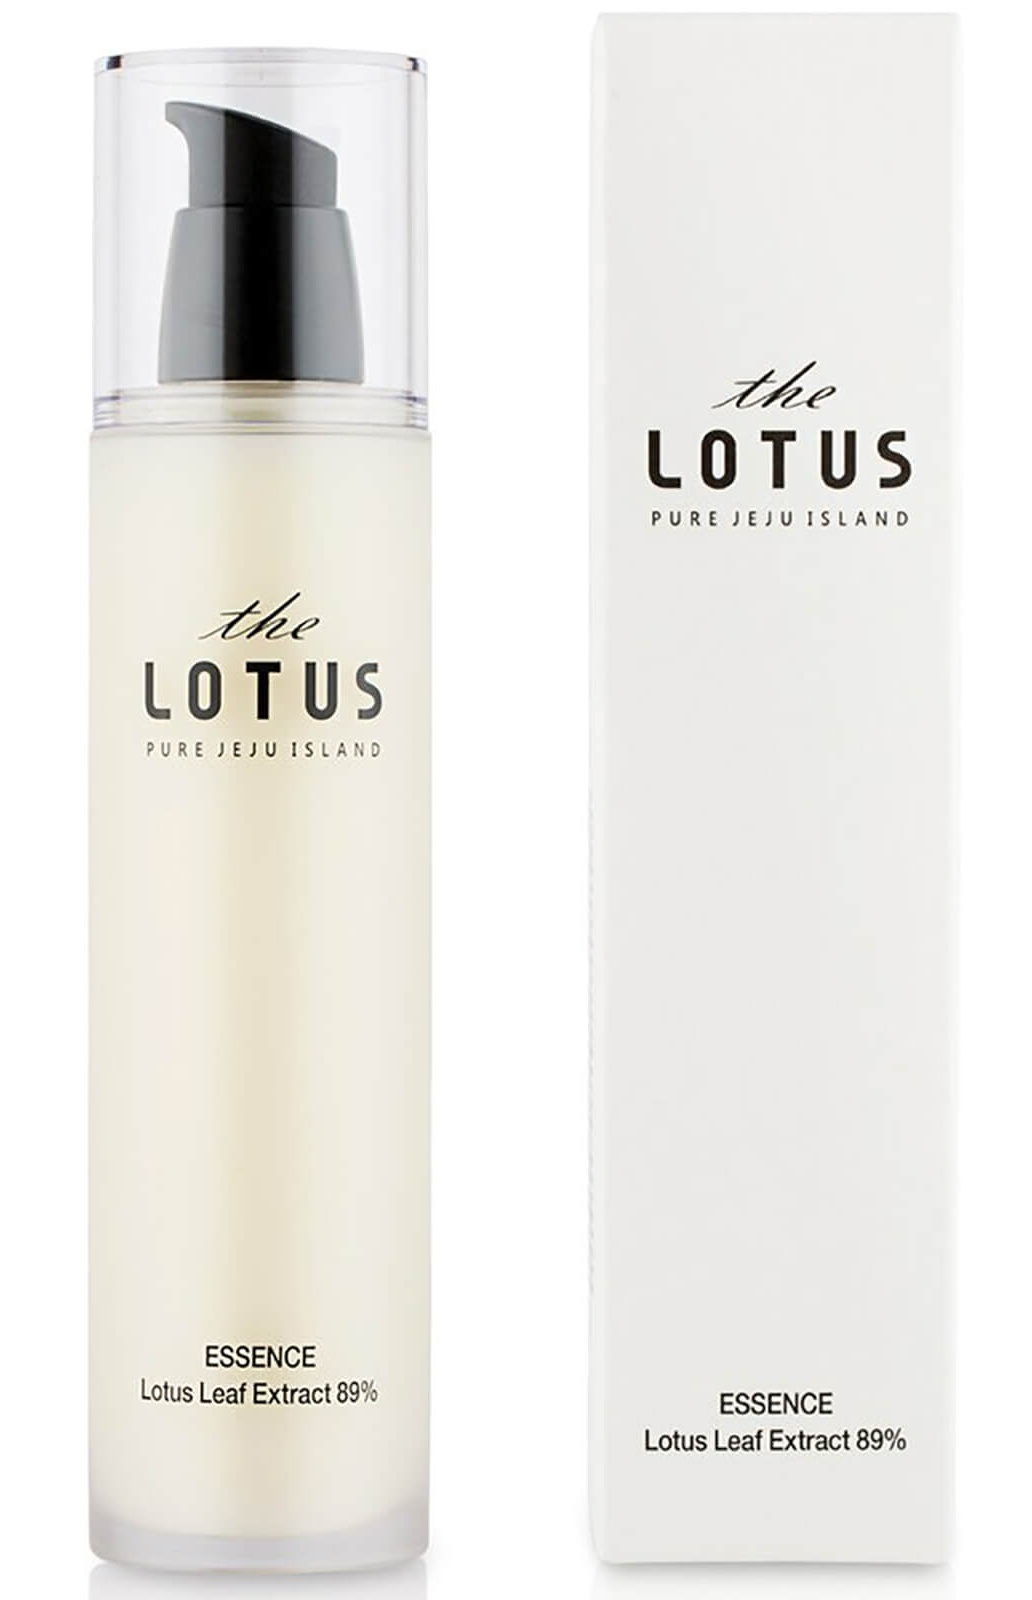 The Lotus Lotus Leaf Extract 89% Essence Lotion